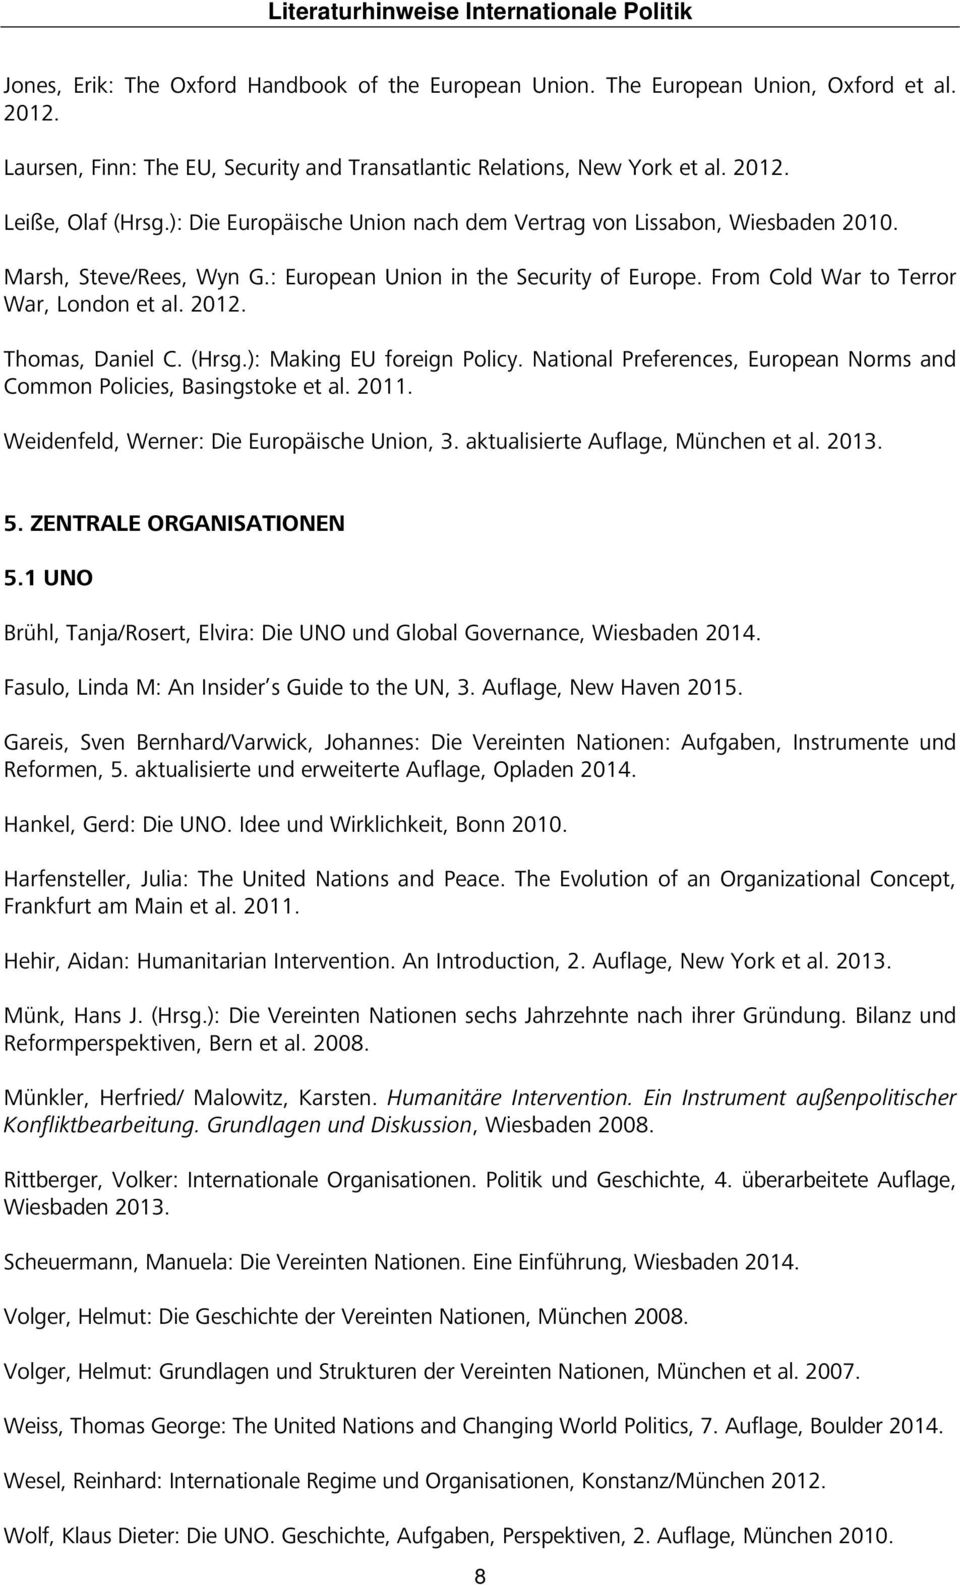 Thomas, Daniel C. (Hrsg.): Making EU foreign Policy. National Preferences, European Norms and Common Policies, Basingstoke et al. 2011. Weidenfeld, Werner: Die Europäische Union, 3.